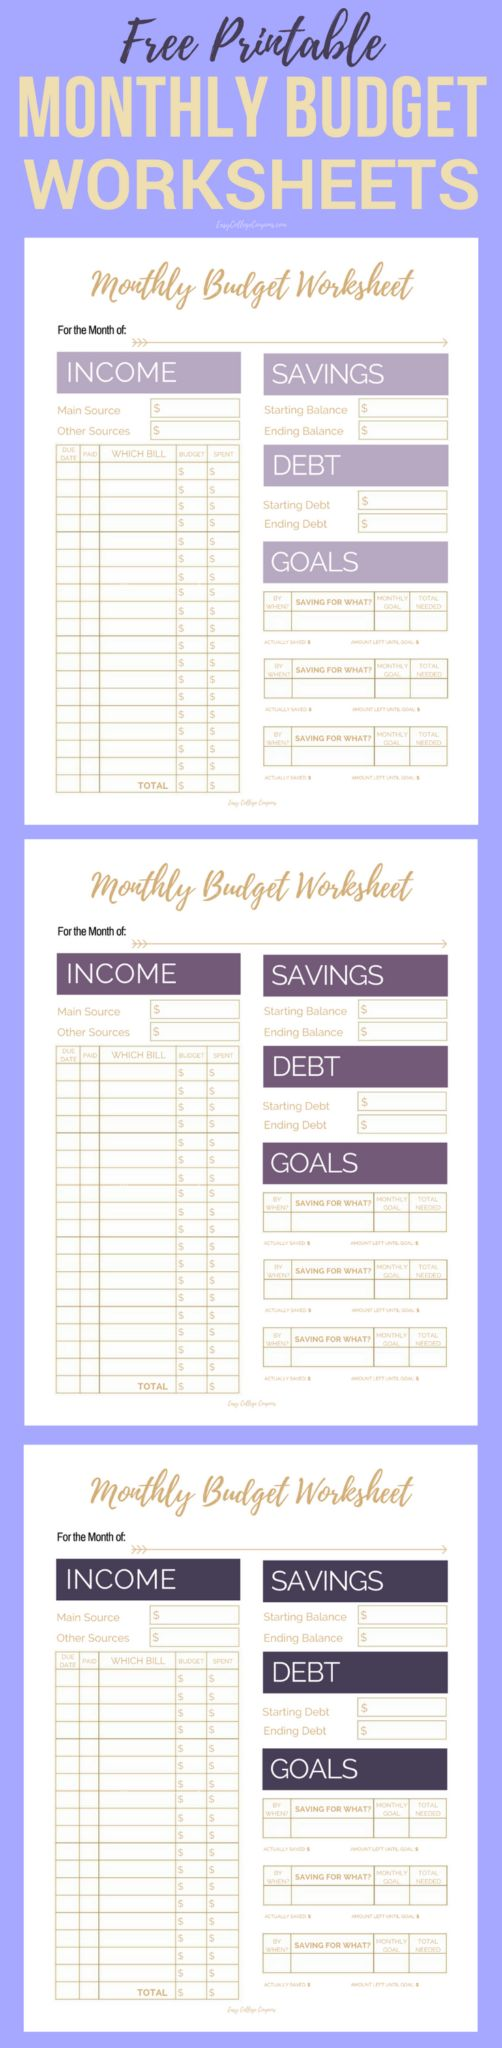 worksheet Financial Budget Worksheet 25 unique printable budget sheets ideas on pinterest free worksheets planner simple college budgeting finance saving